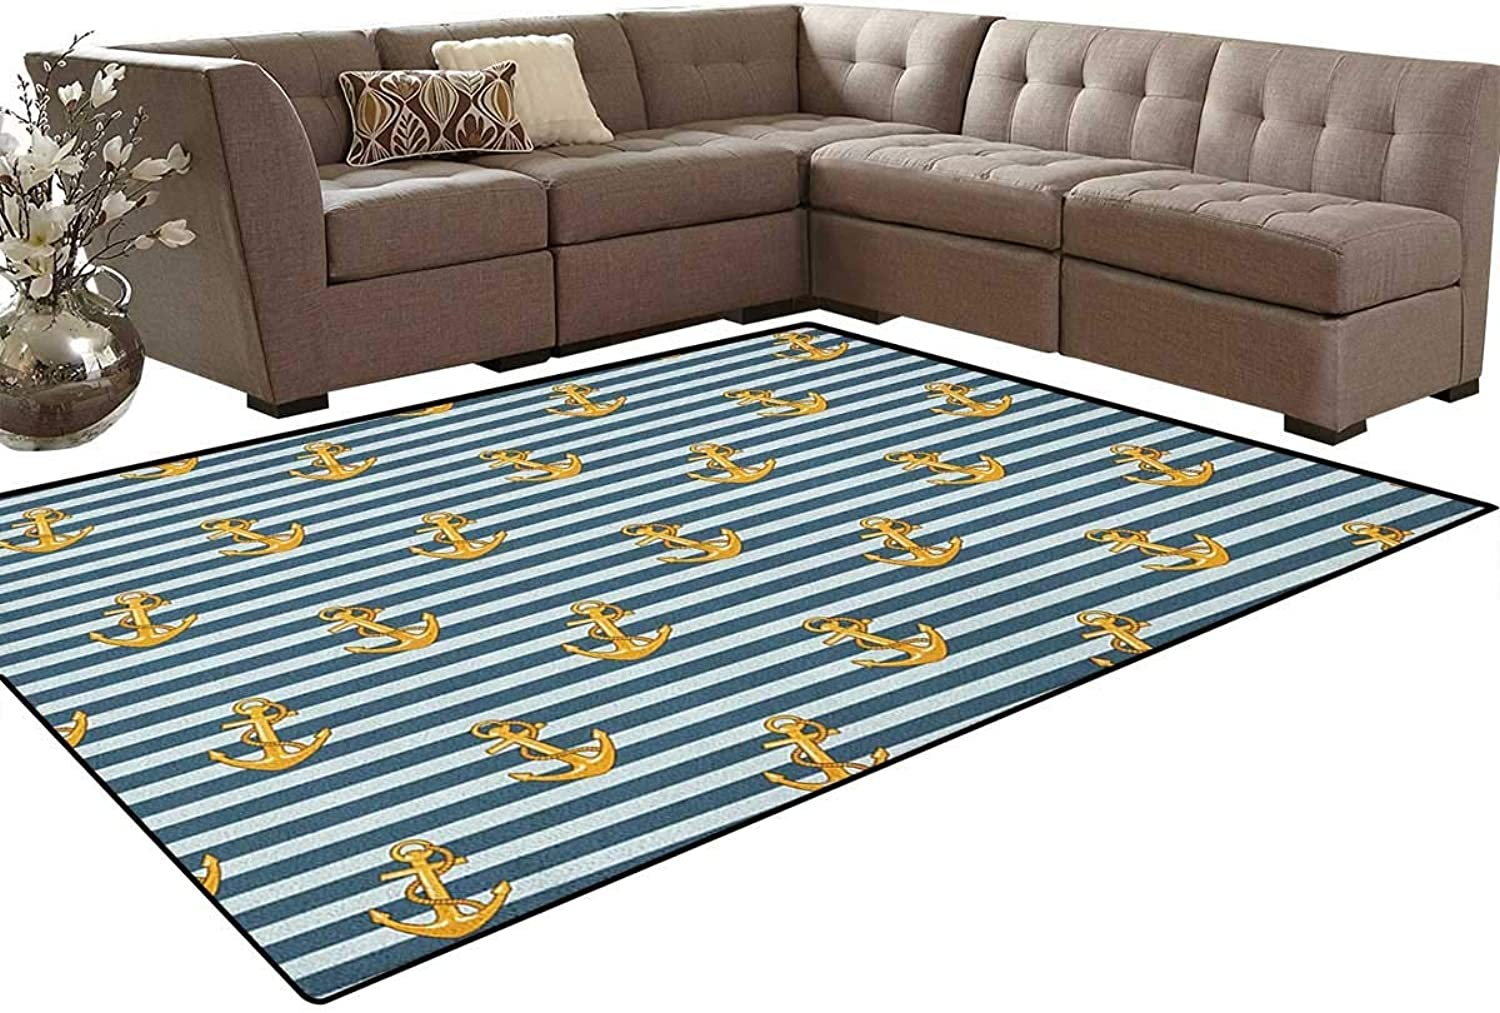 Old Fashion Stylish Nautical Fashion with Anchors Coast Theme Floor Mat Rug Indoor Front Door Kitchen and Living Room Bedroom Mats Rubber Non Slip